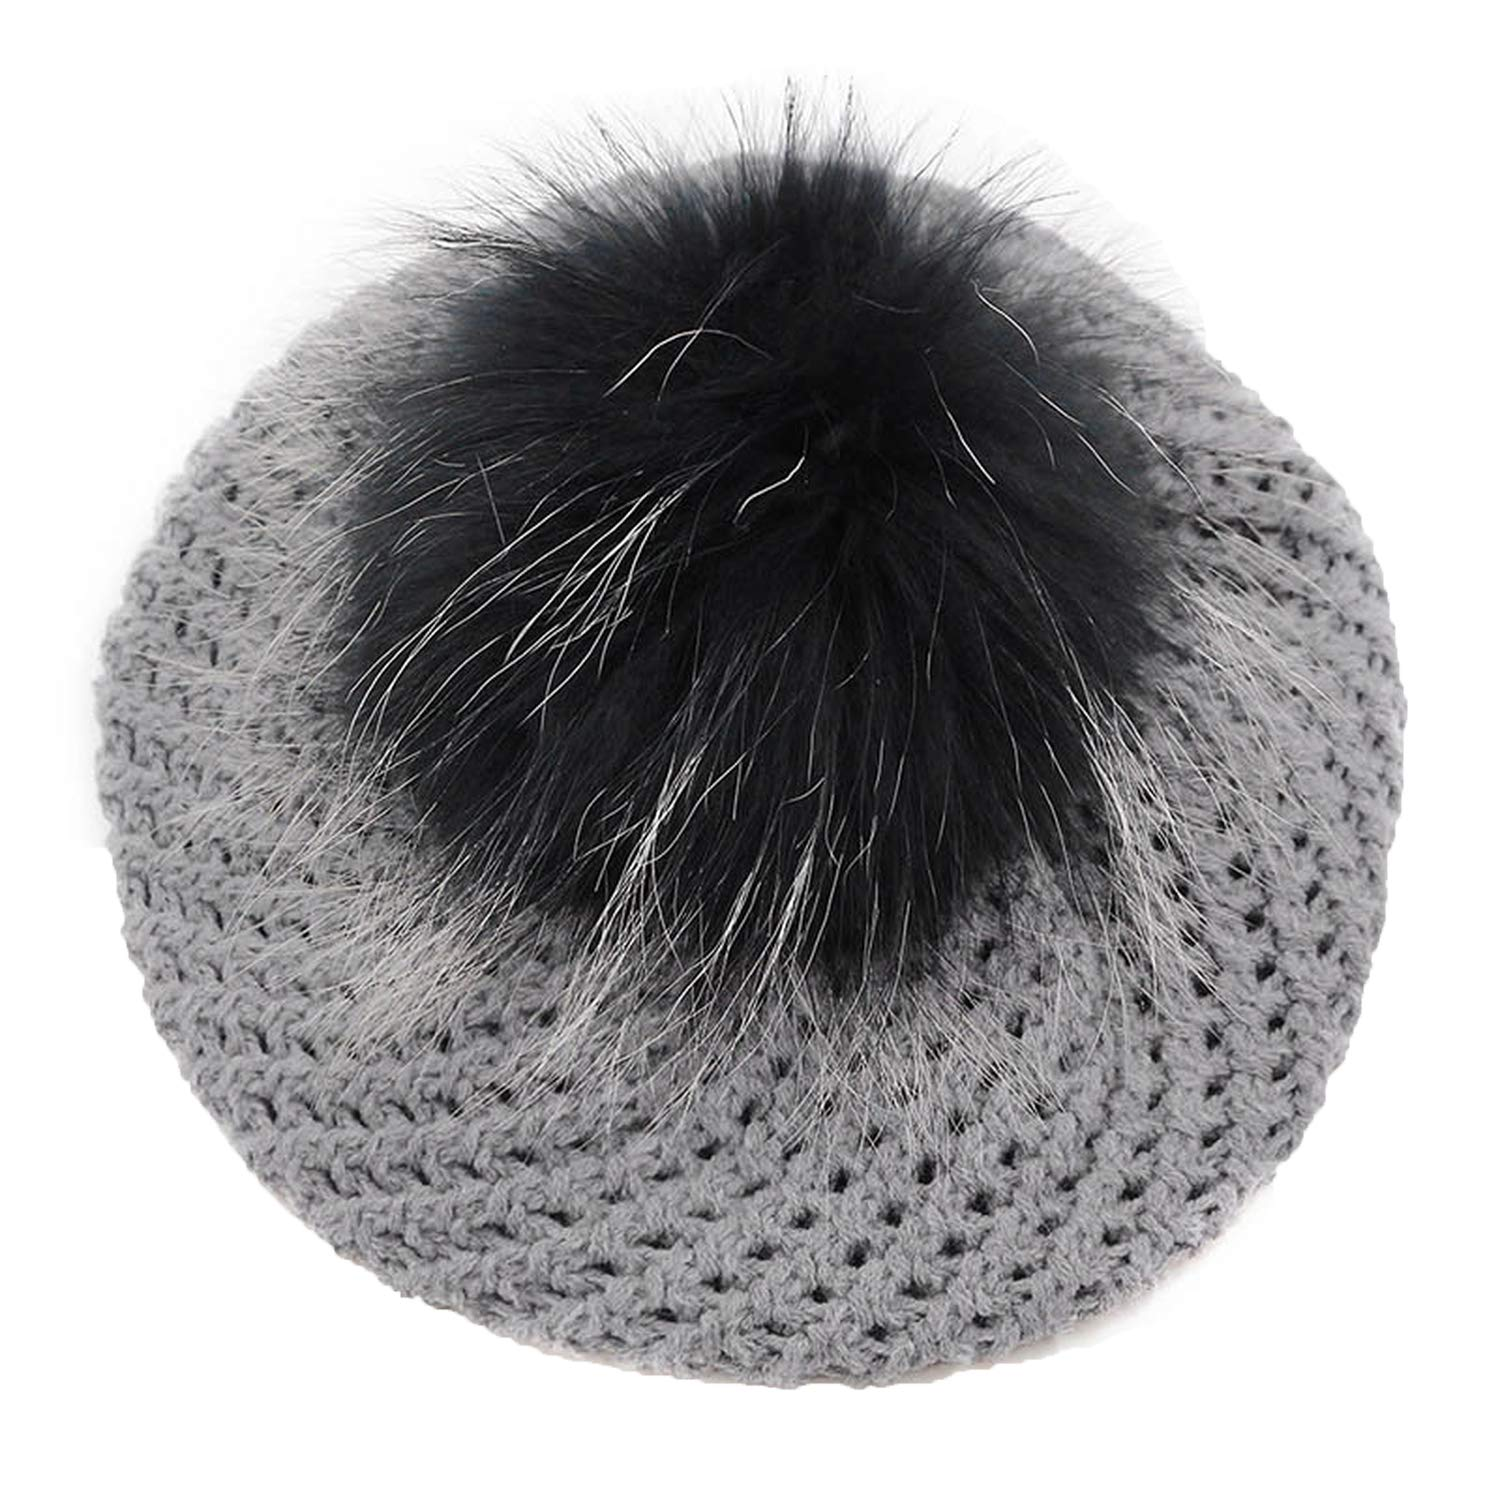 HYID New Soft Warm Autumn Winter Woman Female Beret Hat Cap with Real Fur Pompom Casual Knitted Skullies Hat for Girls